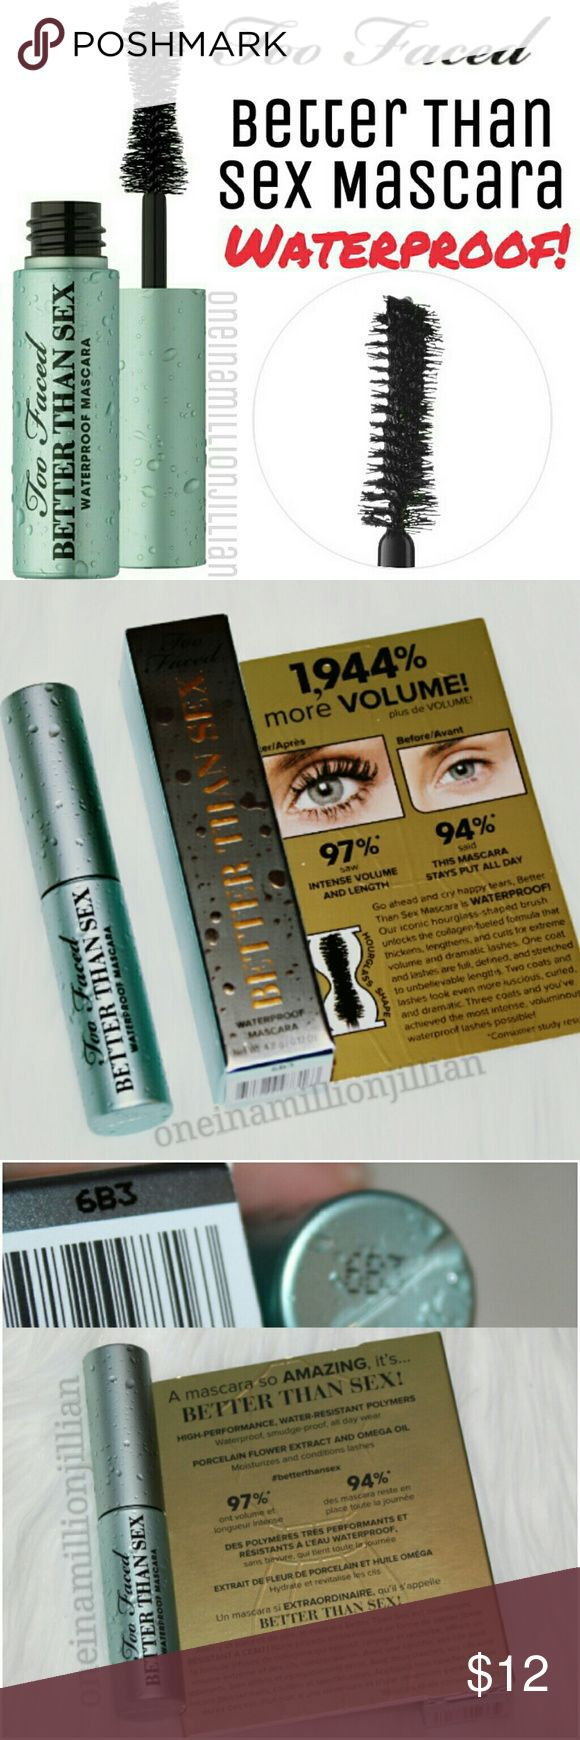 Too Faced Better Than Sex Waterproof Mascara New in Box  .17oz travel sz - Authentic  Color: Black  A waterproof, intensely black, volumizing mascara that separates, coats & curls each lash  ✔Same formula as the original + high-performance & water-resistant polymers ✔Same hourglass-shaped brush designed with extra stiff bristles to maximize performance  ◇ 1 Coat - Lashes are full & defined ♡ 2 Coats - Lashes are even more luscious, curled & dramatic ☆ 3 Coats - You've achieved the most…